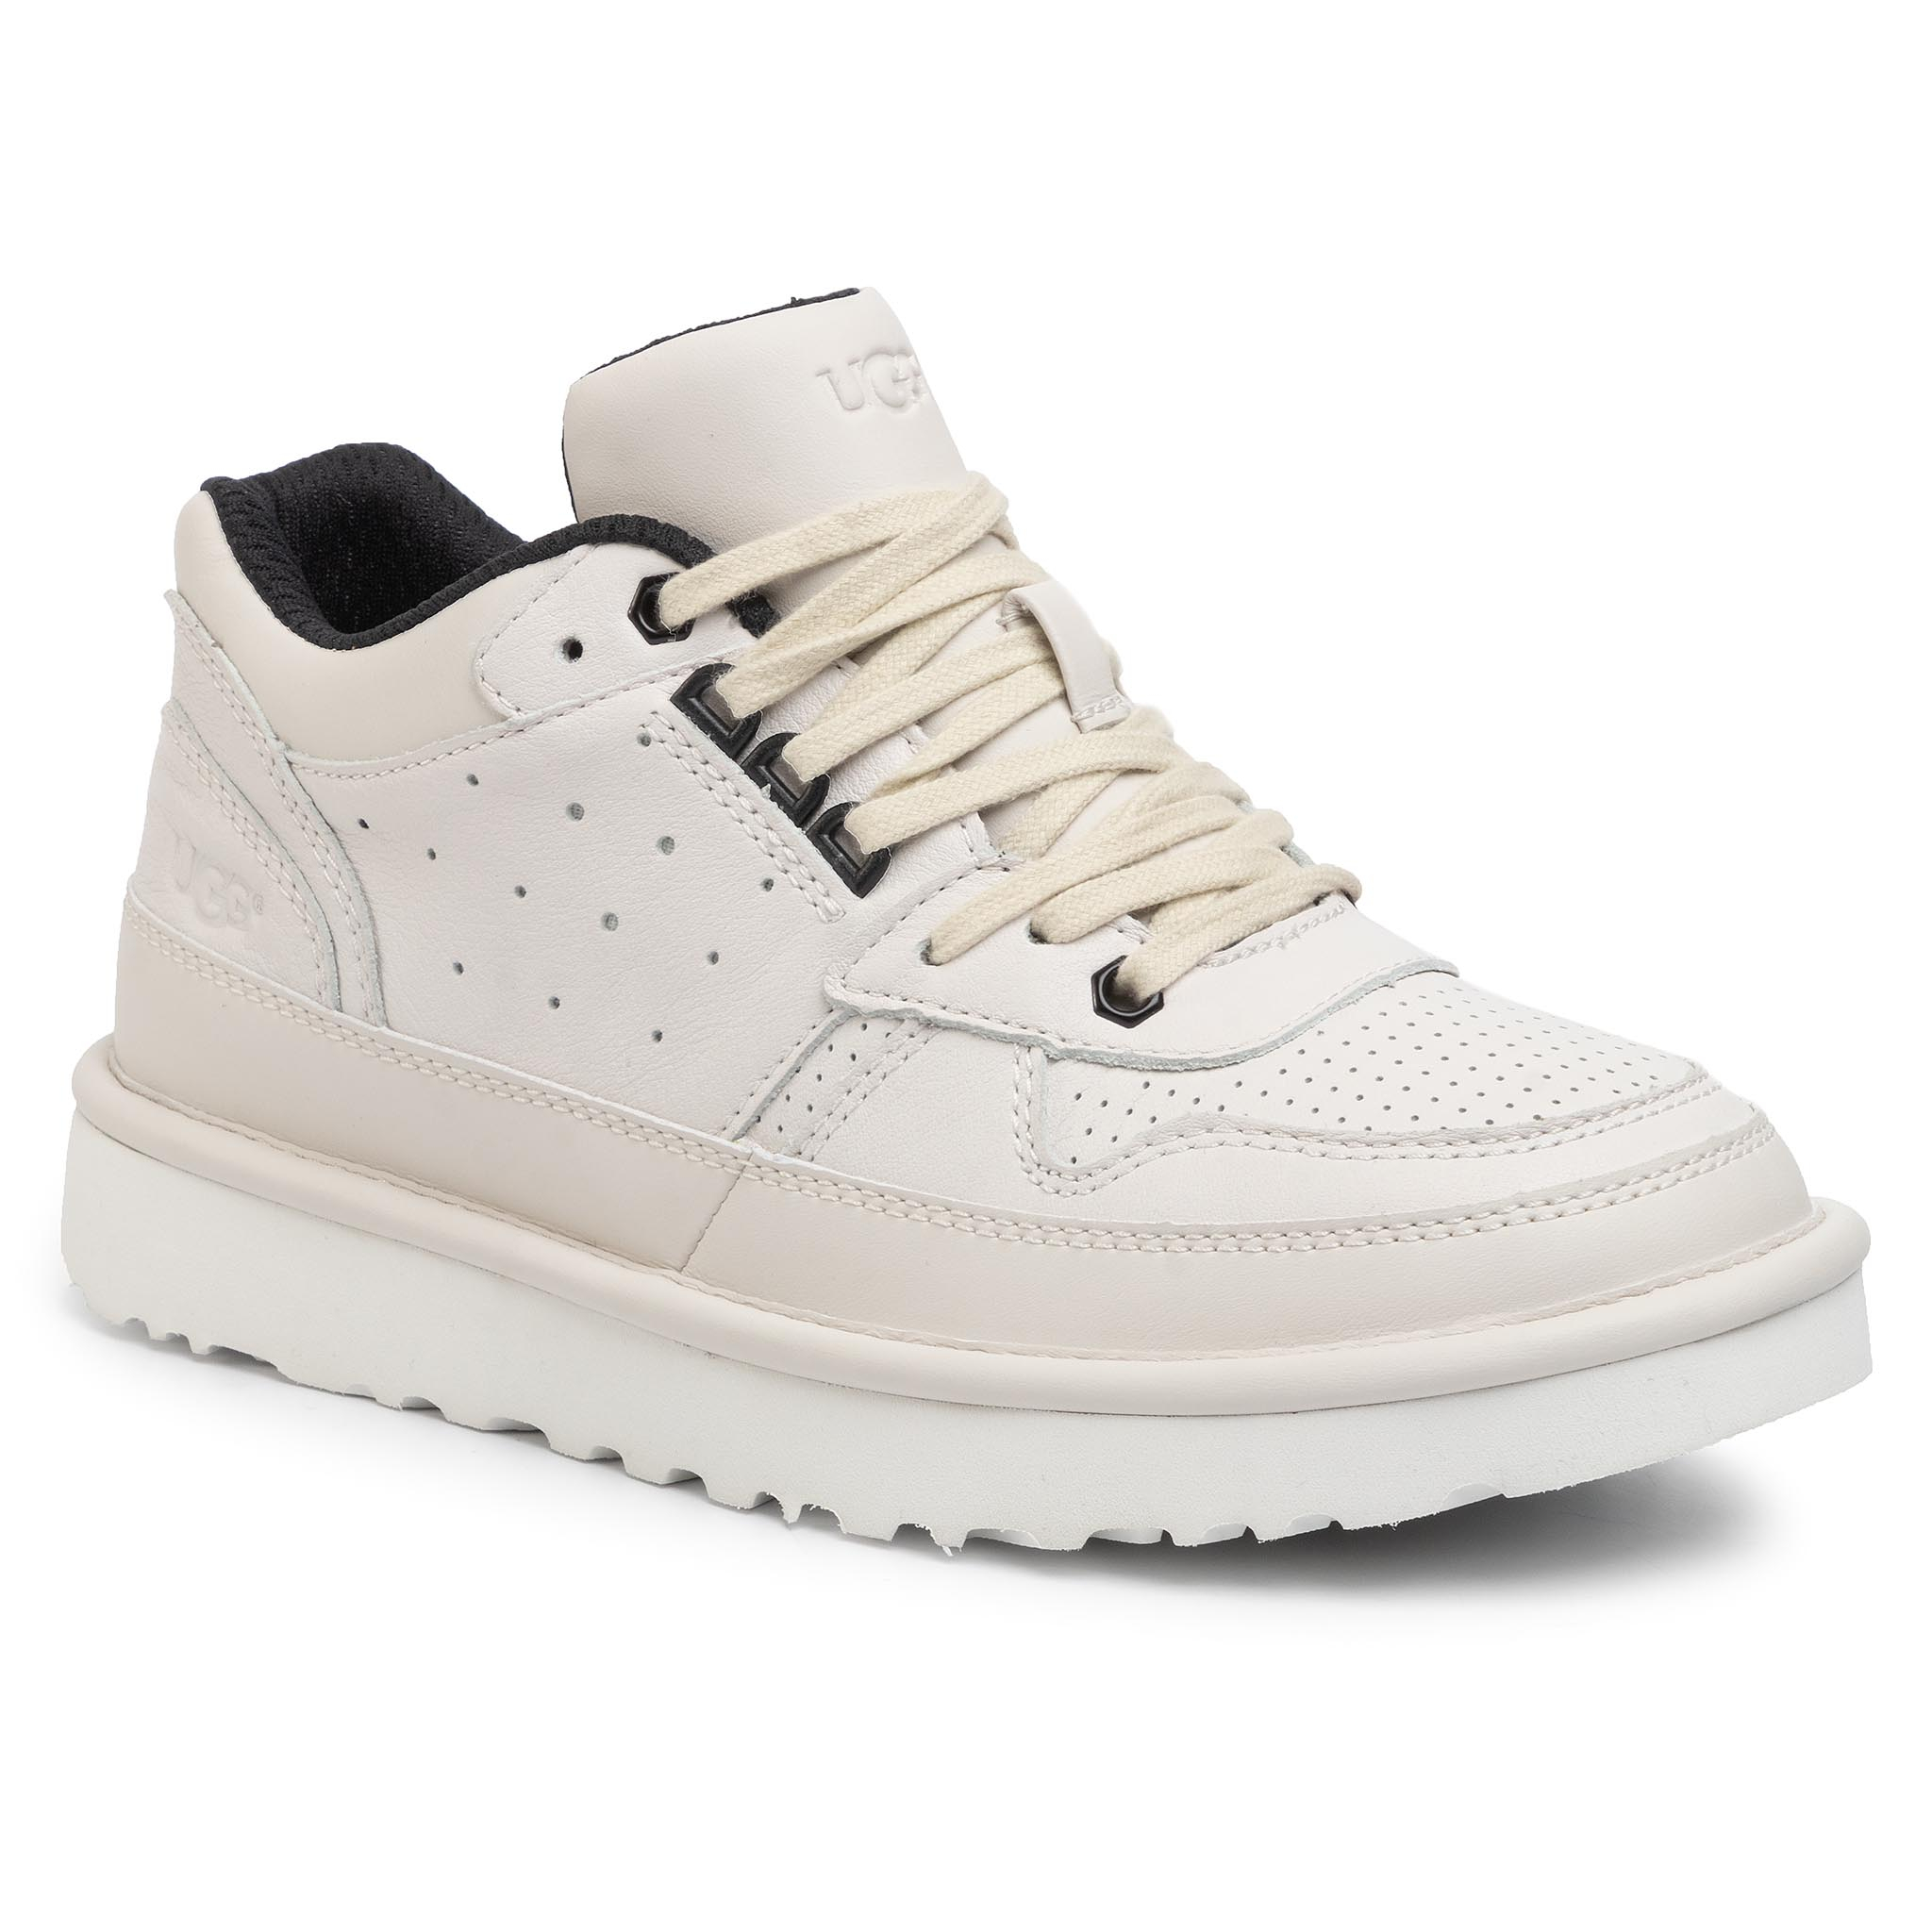 Sneakers UGG - M Highland Sneaker 1099701 M/Wht